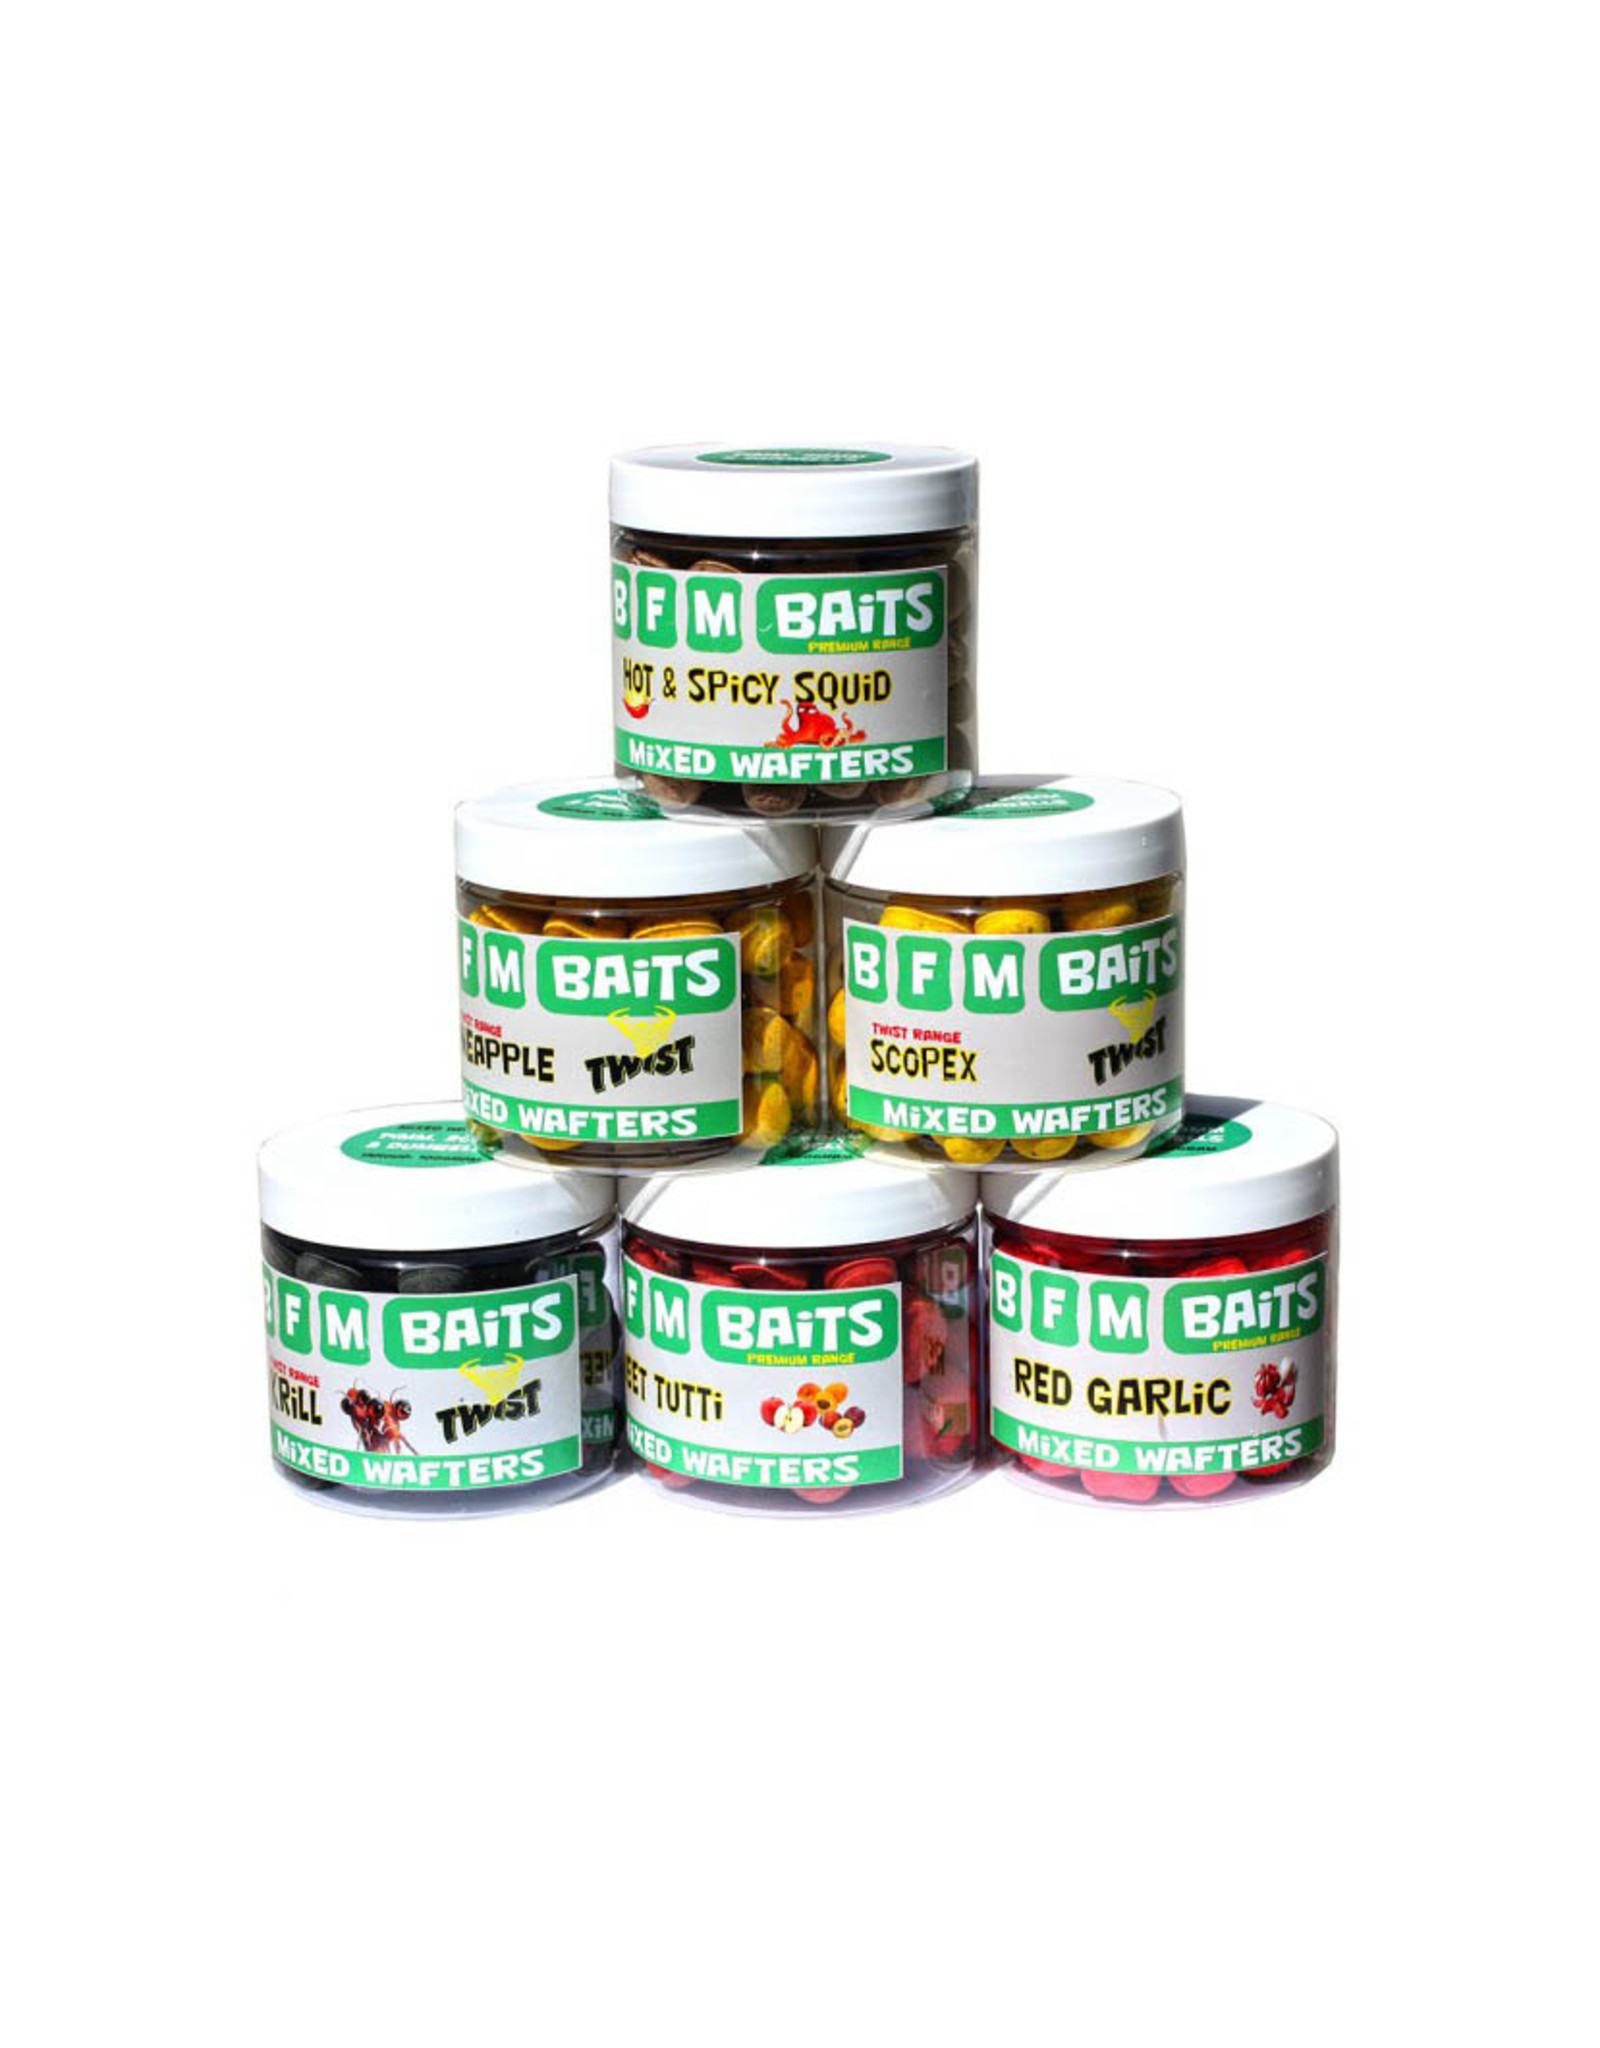 BFM Baits Hot & Spicy Squid - Mixed Wafters